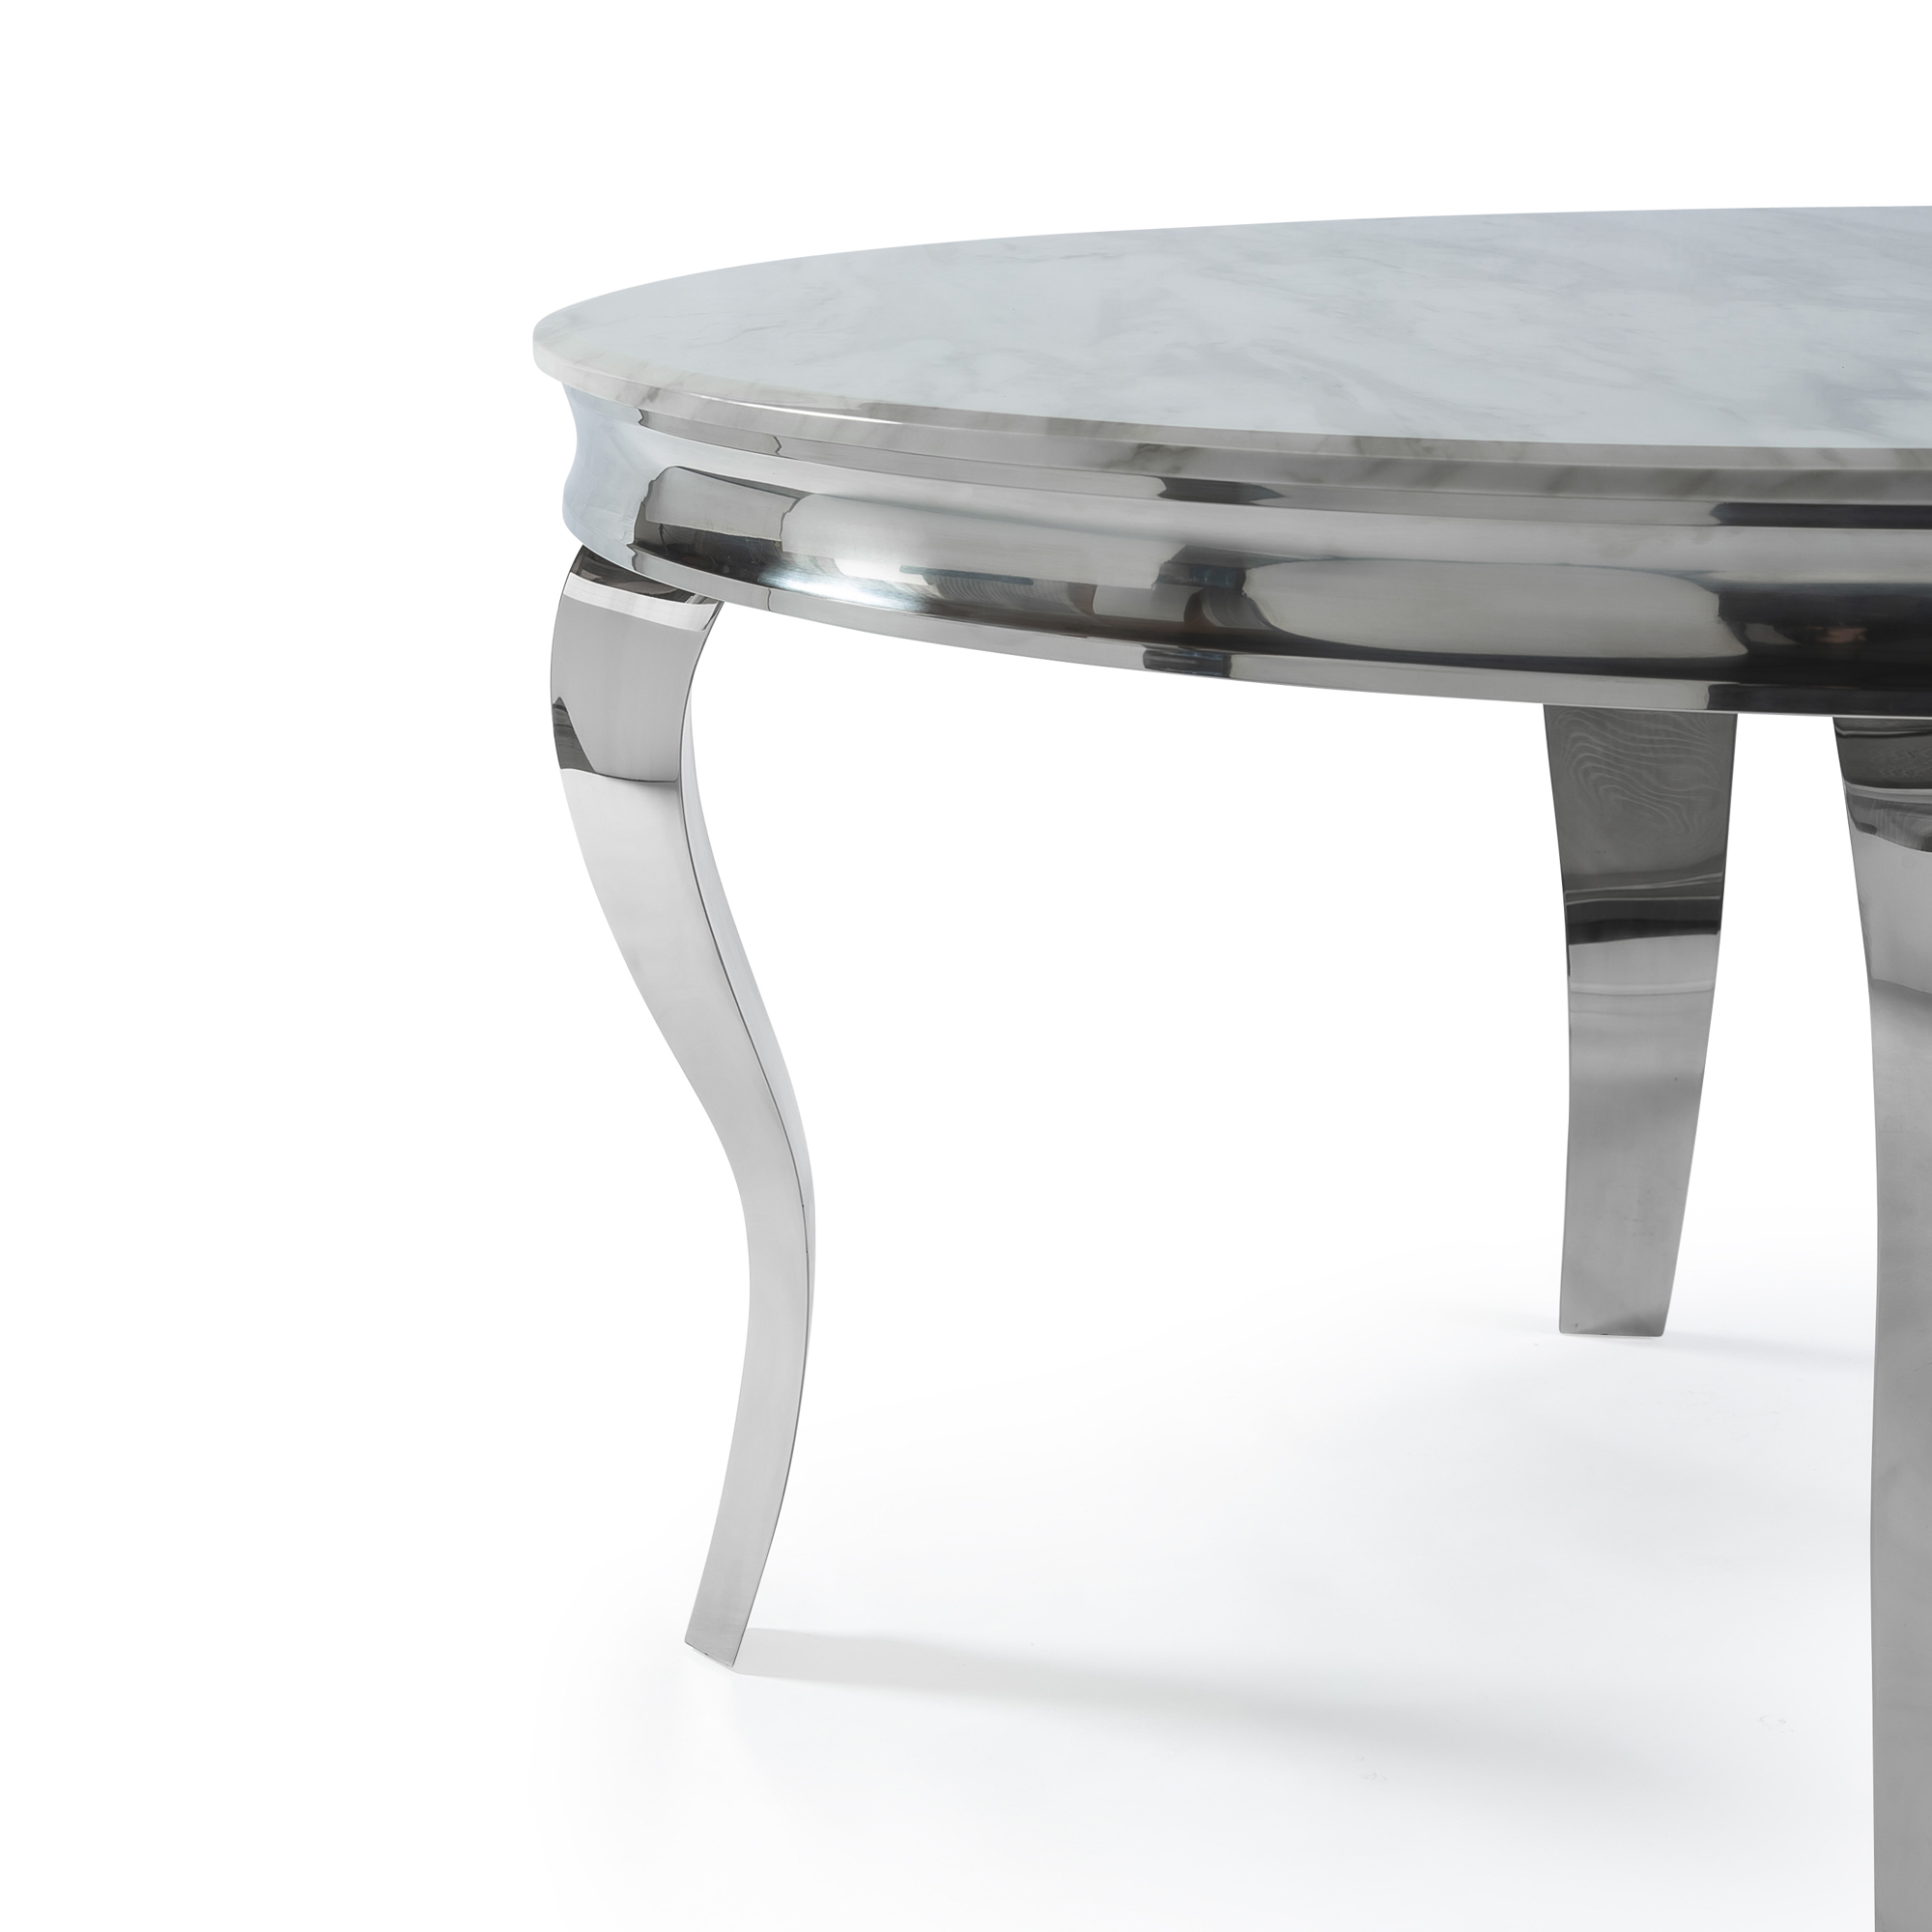 1.3m Circular Louis Polished Steel Dining White Marble Table Set with 4 Knightsbridge Grey Brushed Velvet Dining Chair